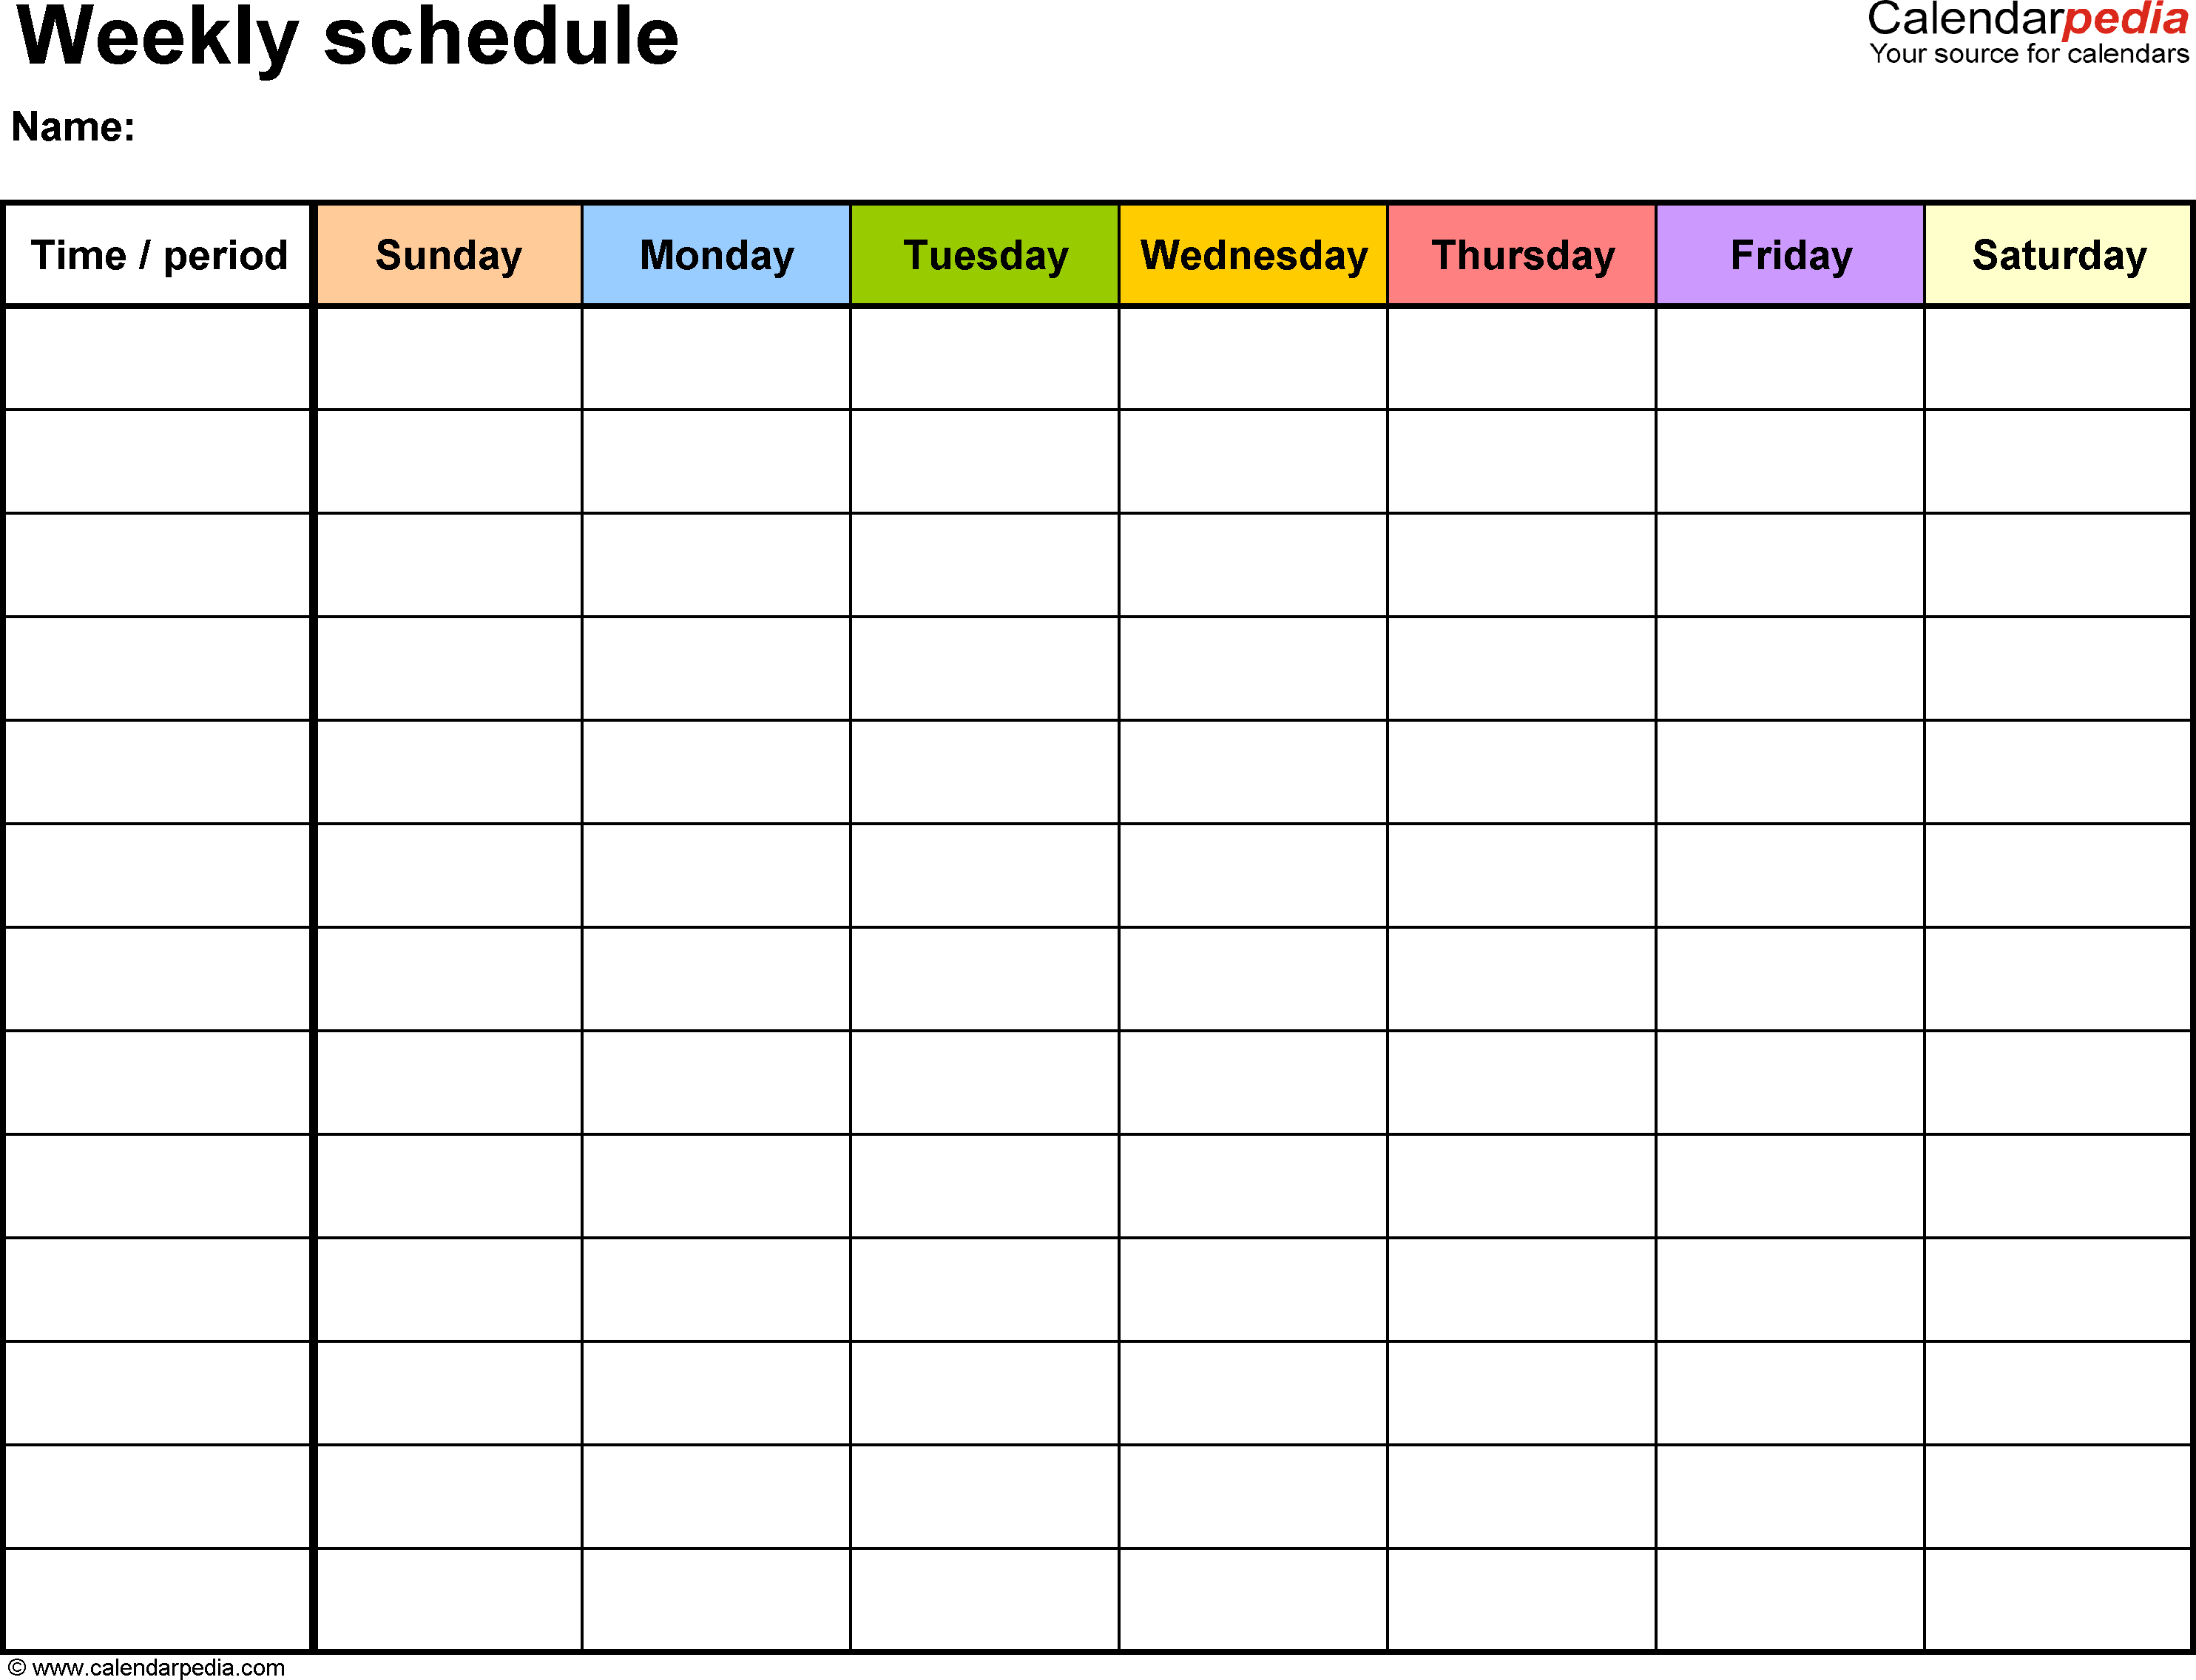 Weekly Schedule Template For Word Version 13: Landscape, 1 7 Day Schedule Template Blank